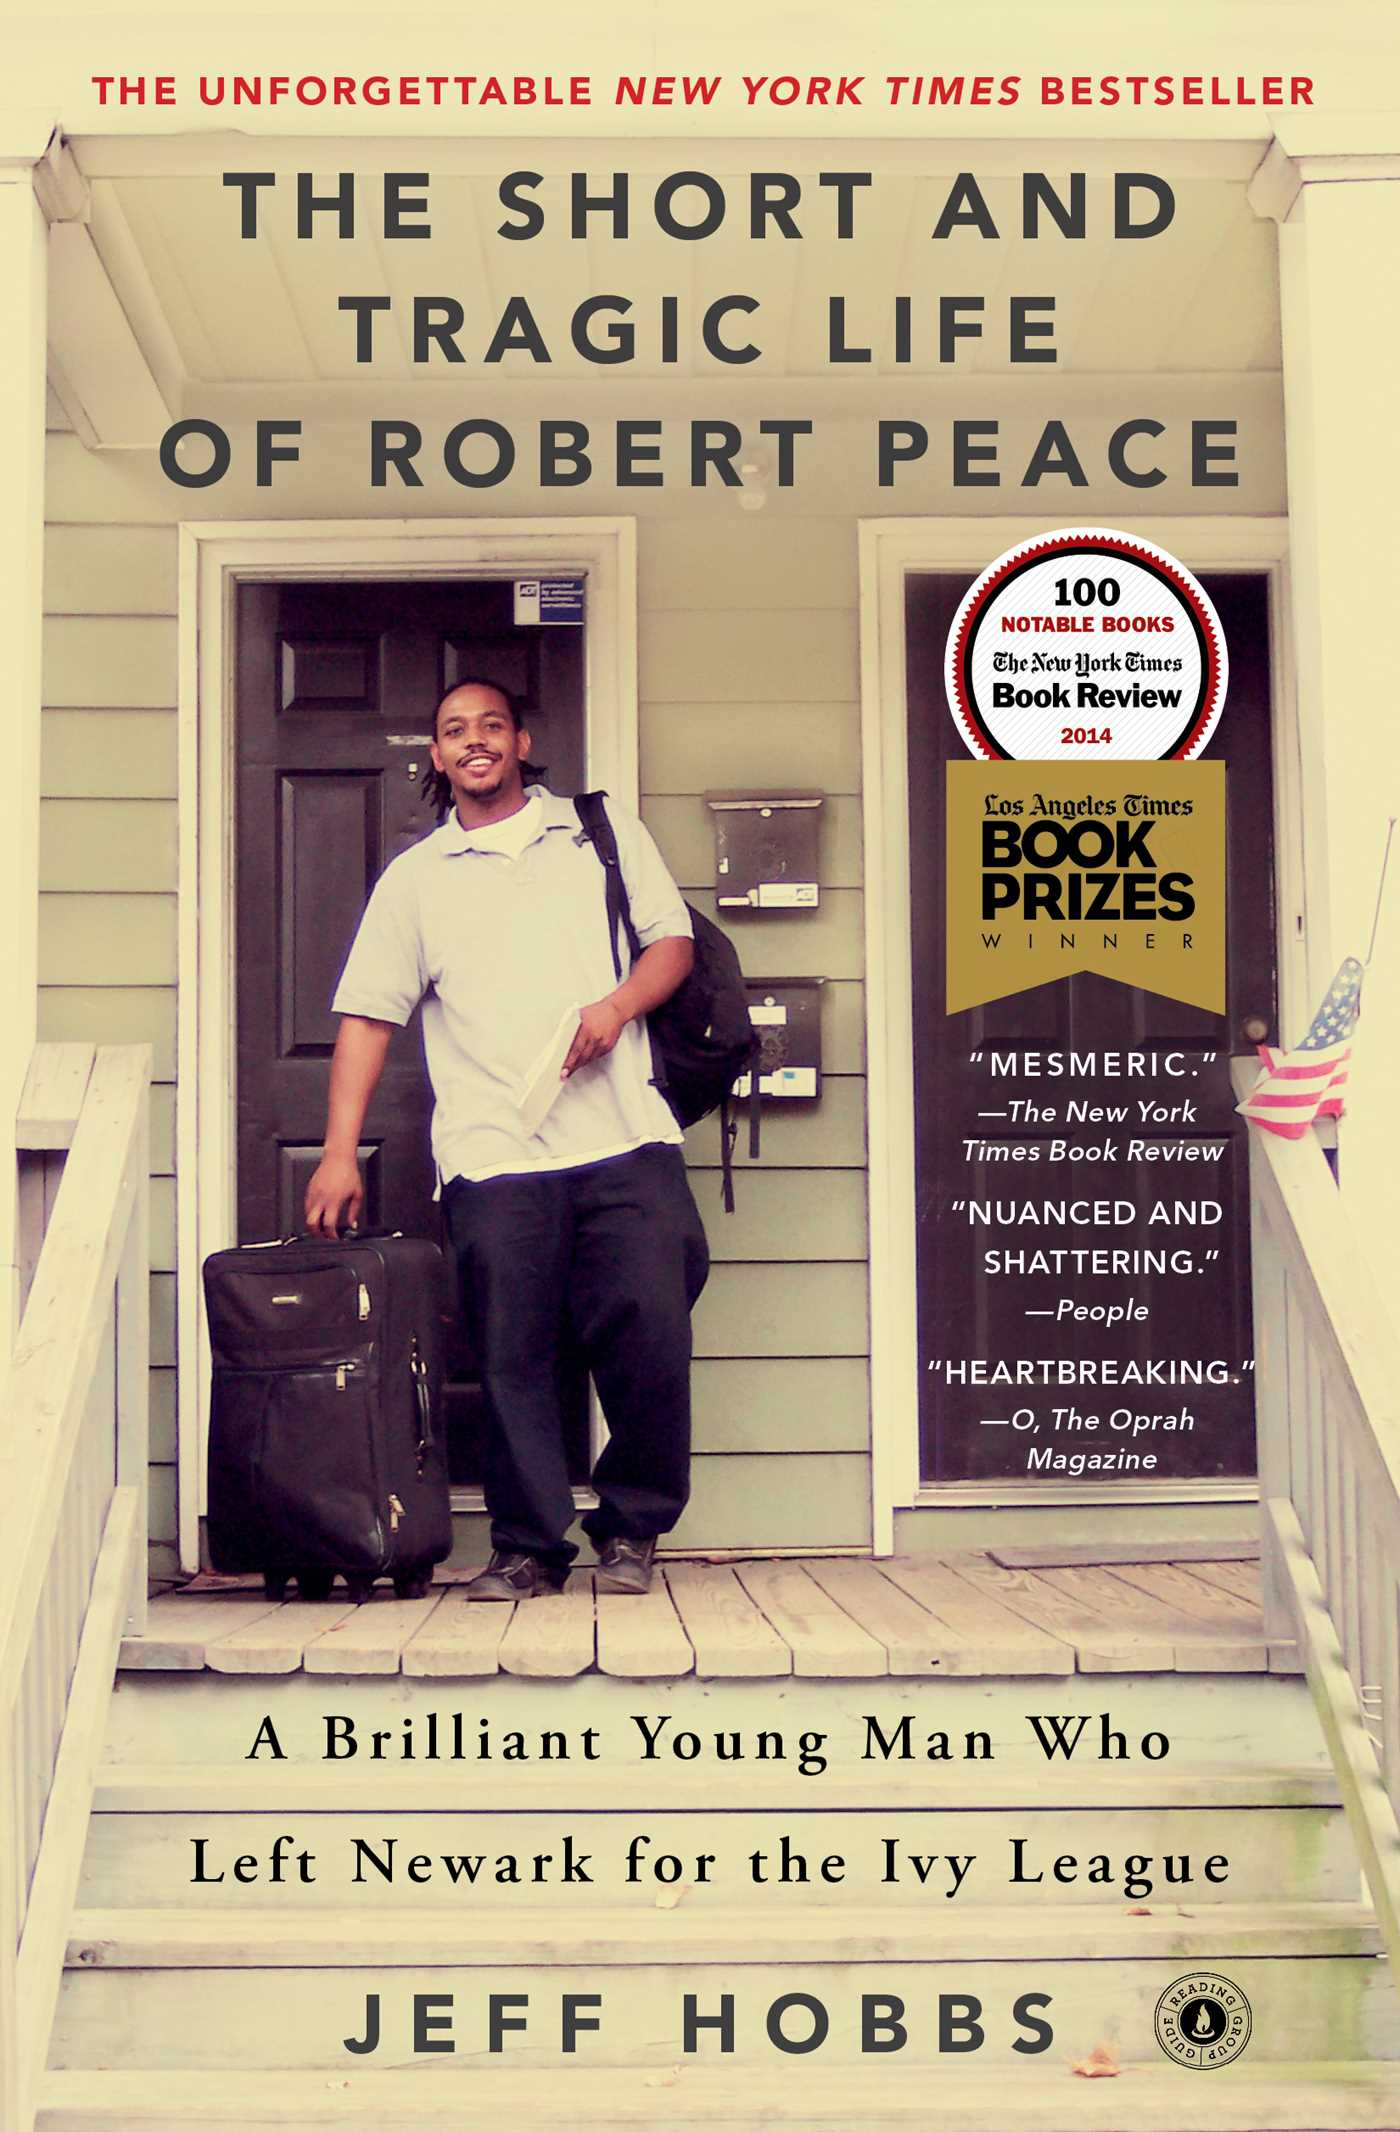 Book cover for the short and tragic life of robert peace